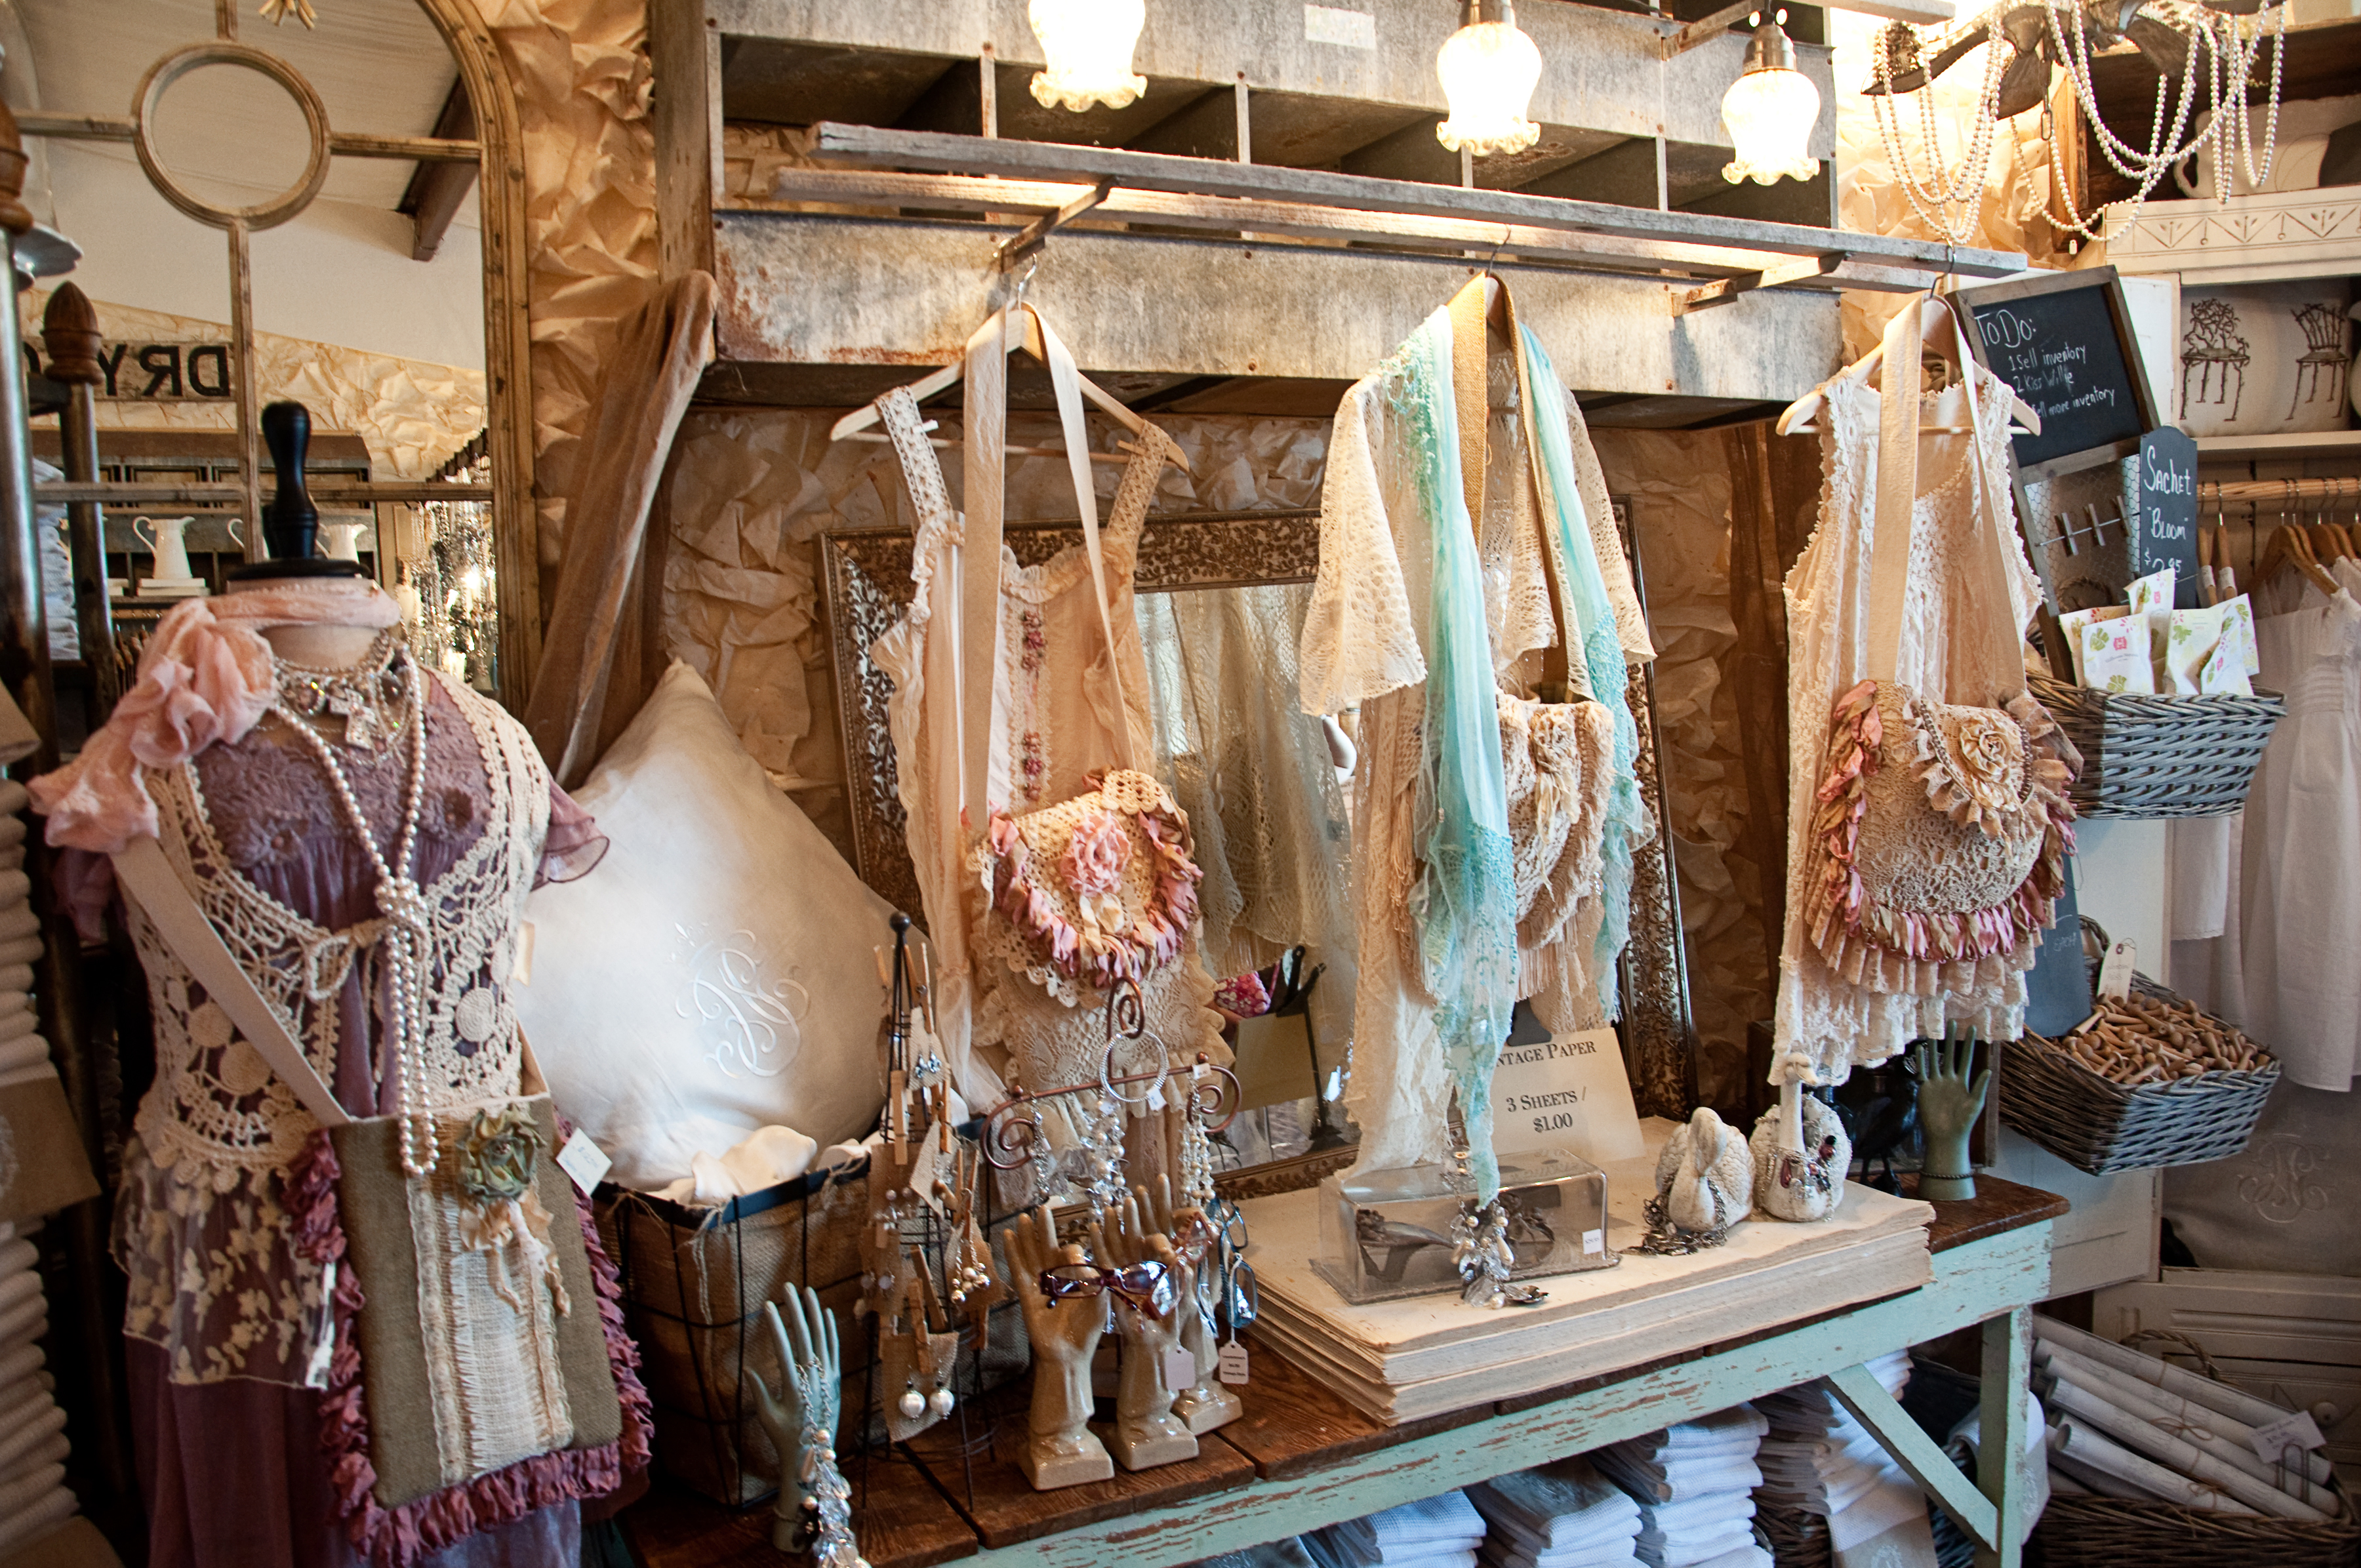 Romantic Country Spring  Feature Raised In Cotton - Gorgeous homes interior design